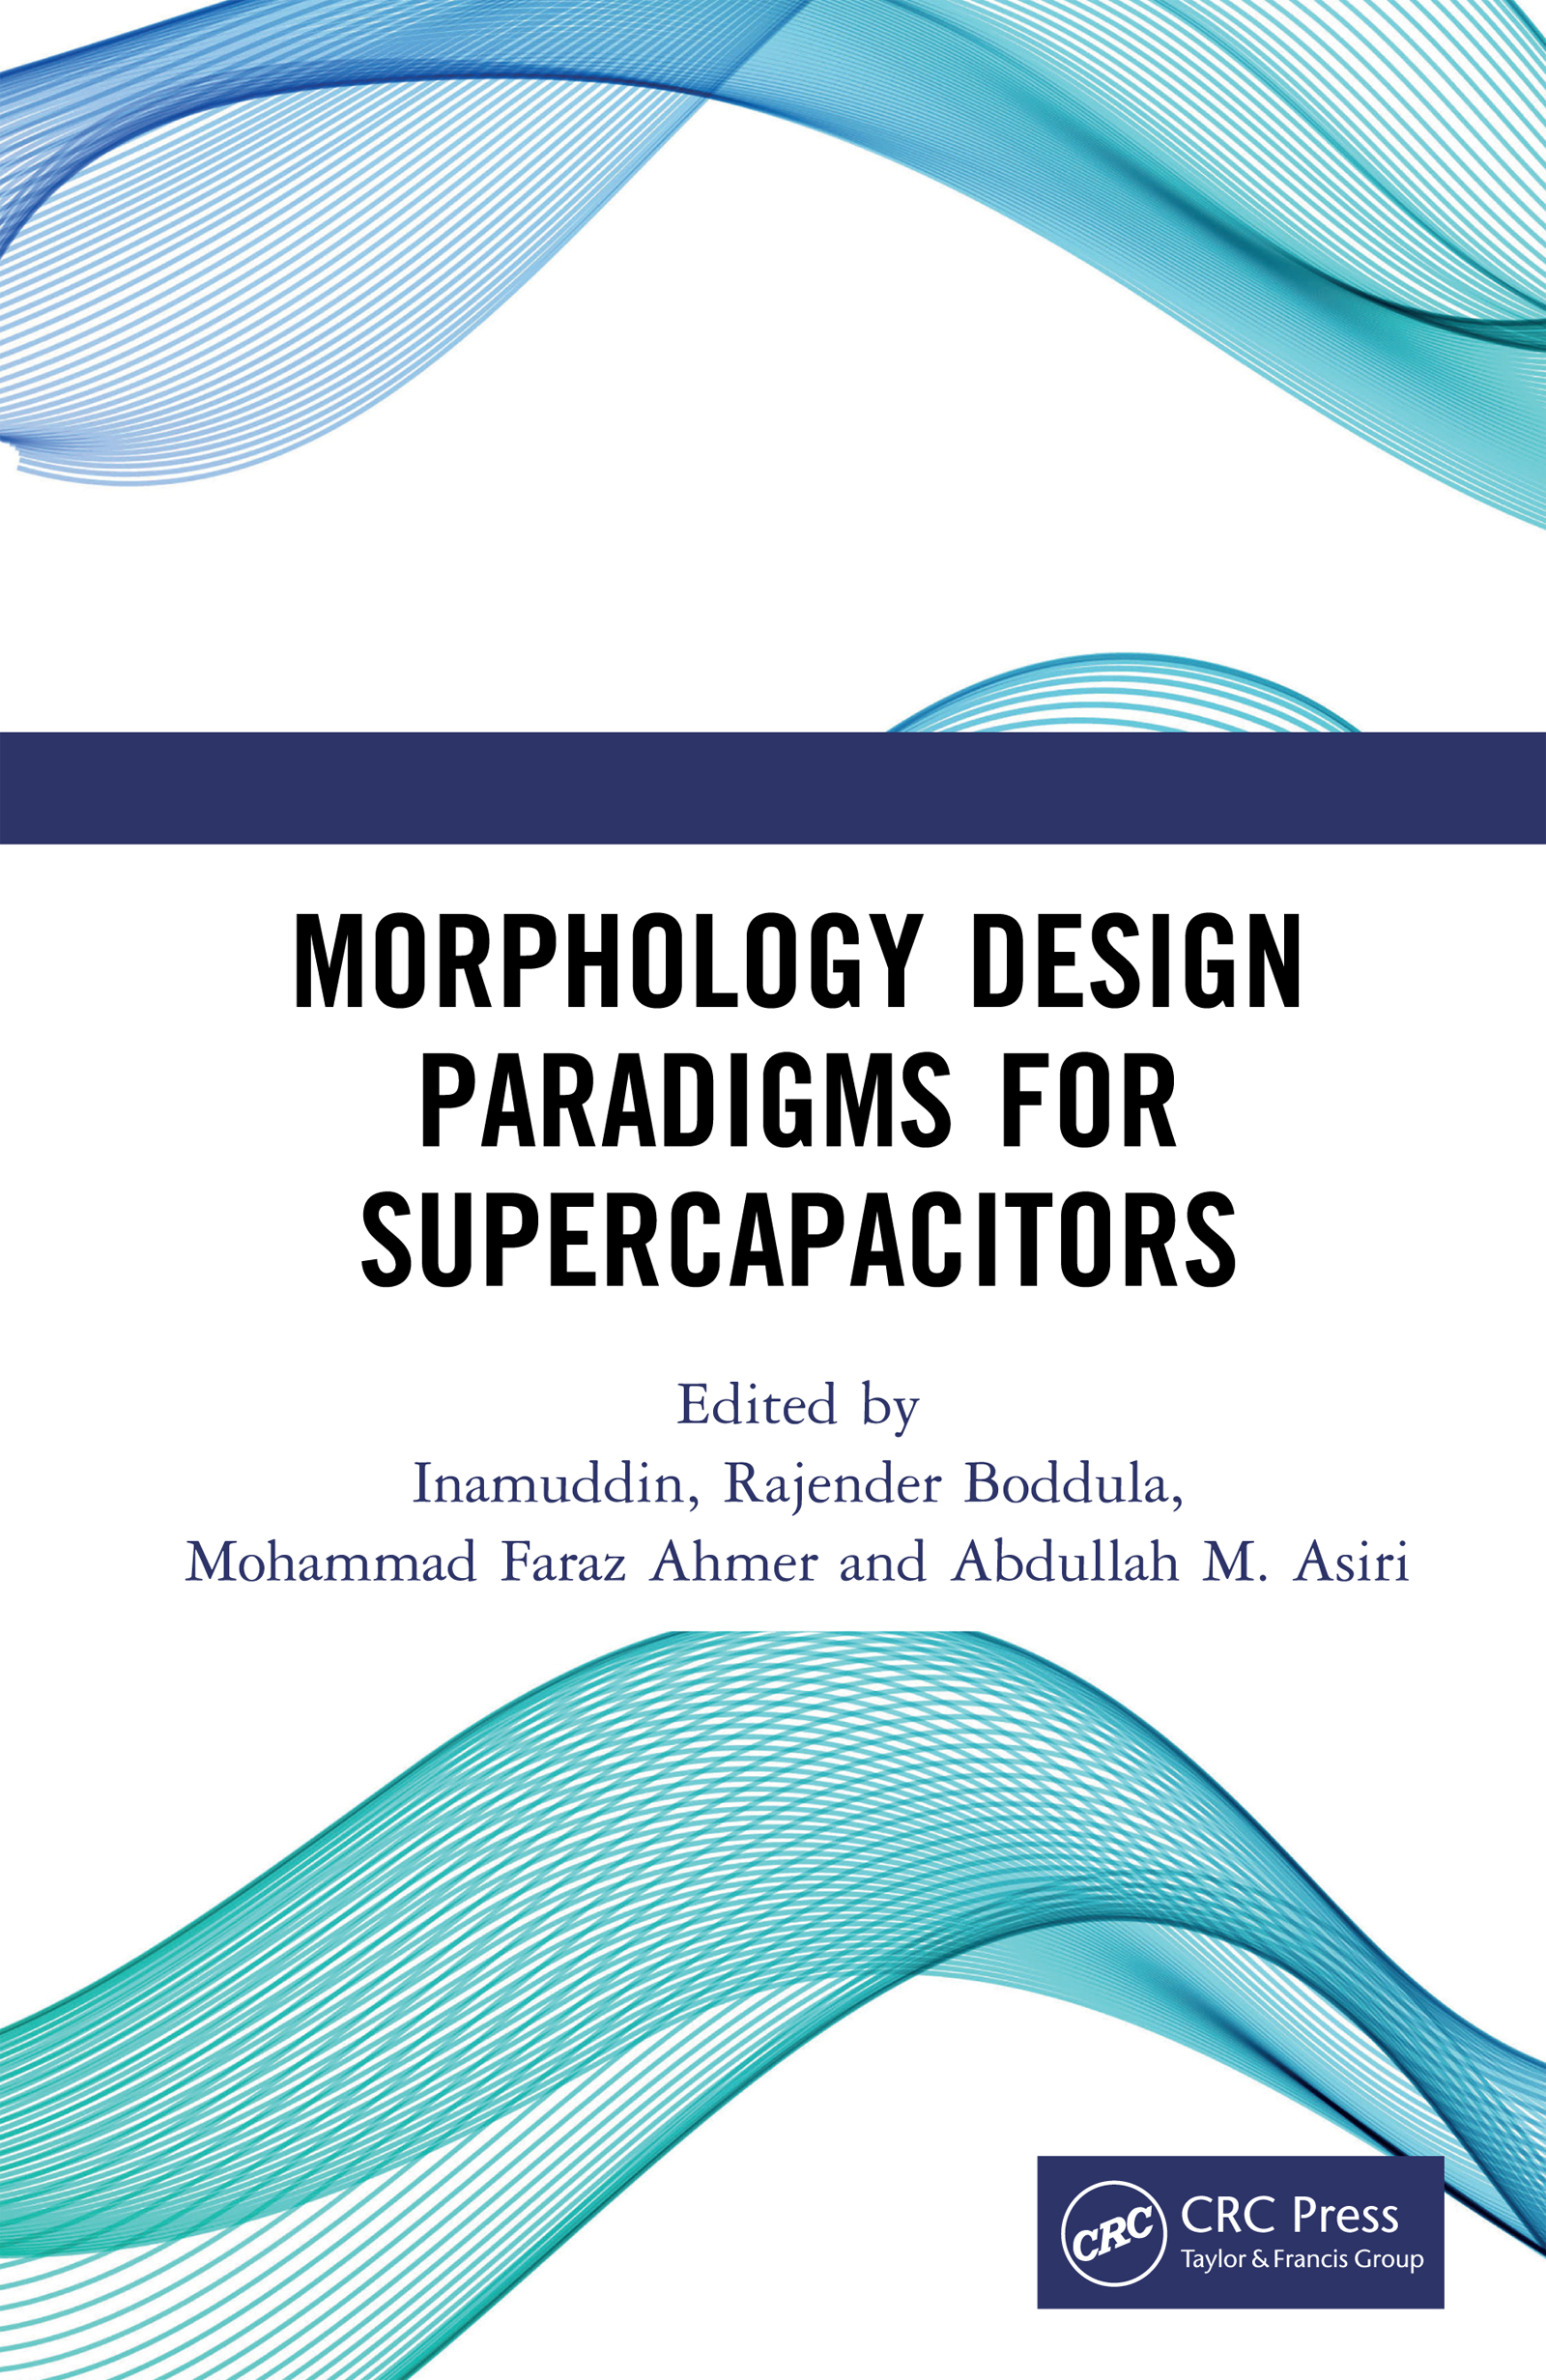 Morphology Design Paradigms for Supercapacitors book cover